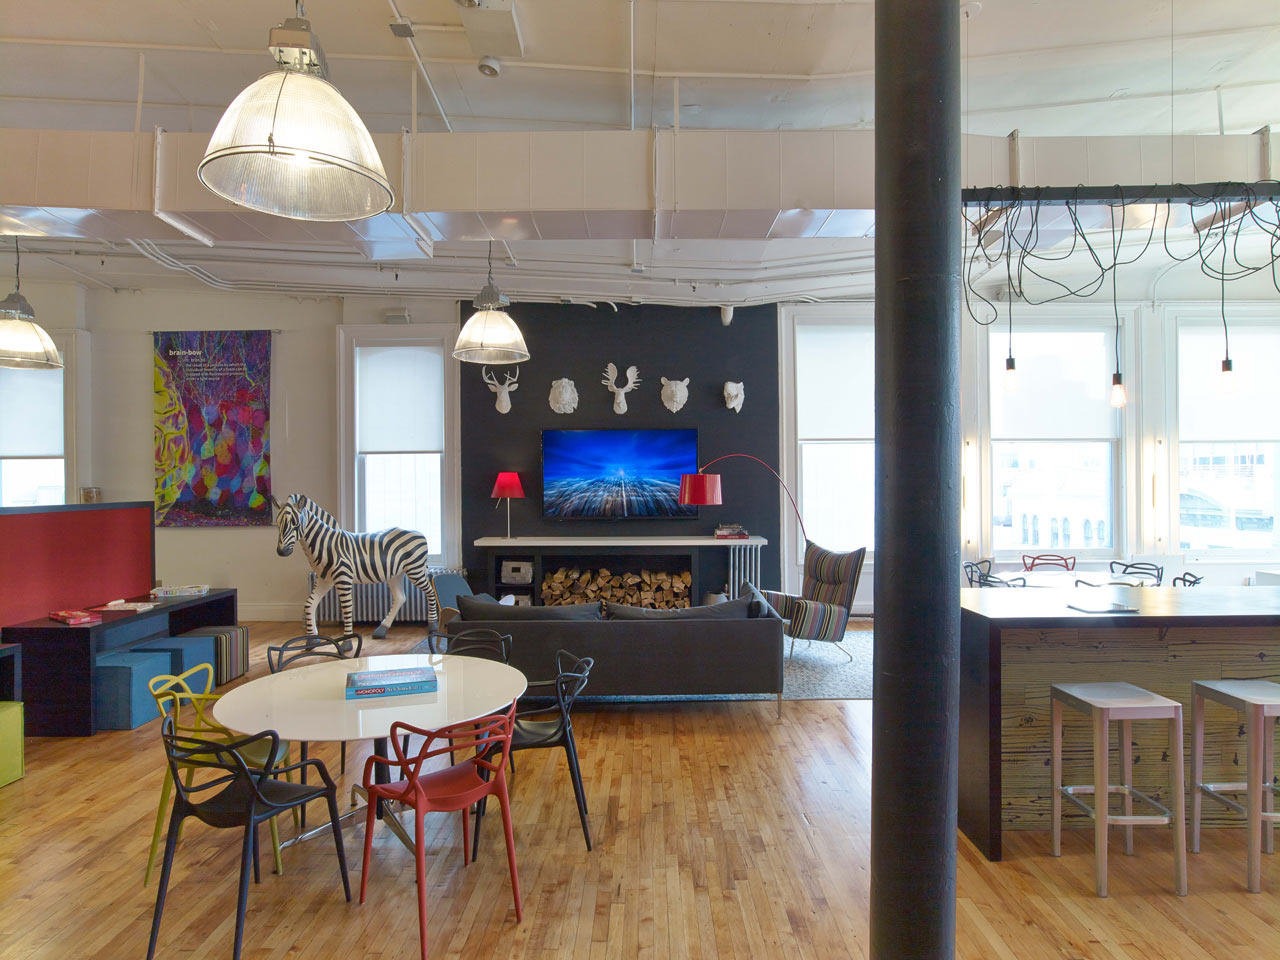 A Communications Agency with a Colorful Personality